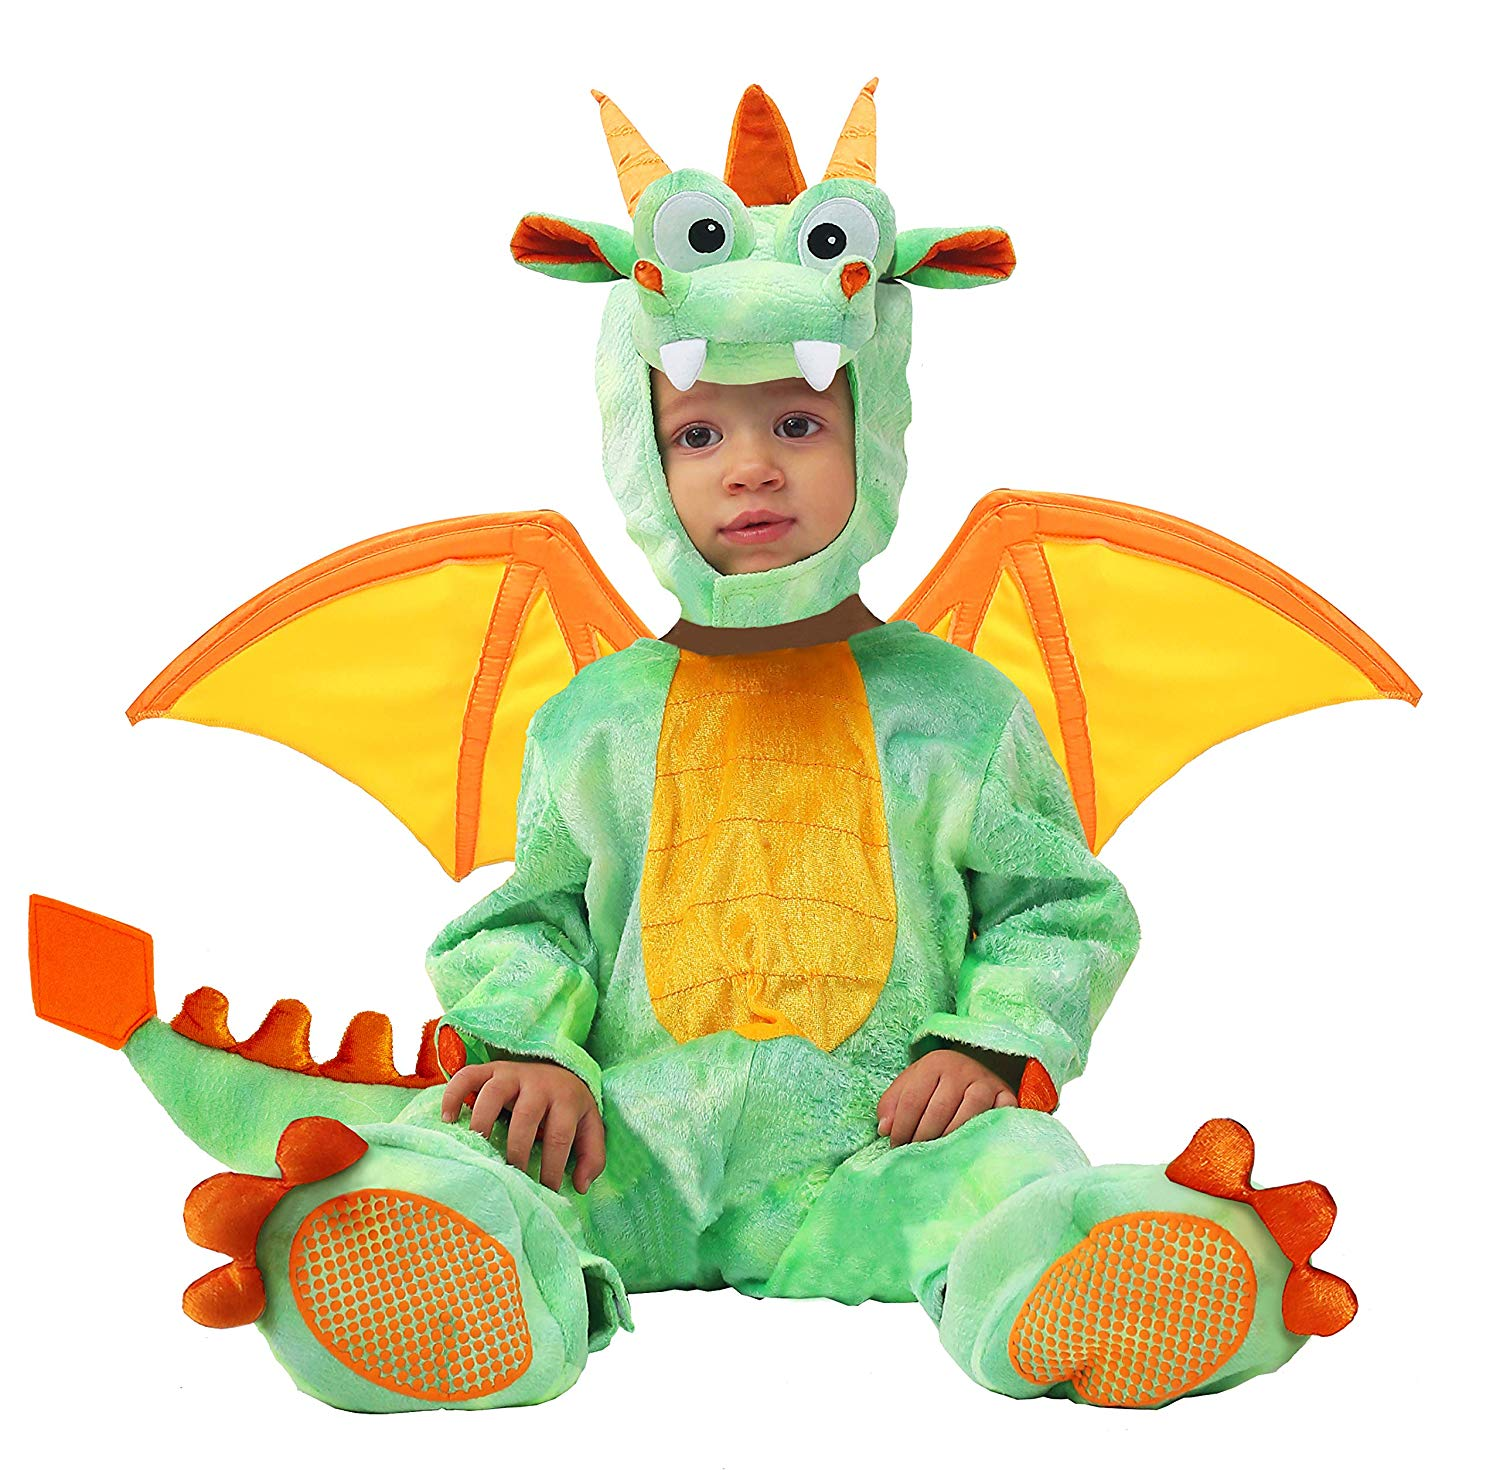 Spooktacular Creations Baby Dragon Costume Infant Deluxe Set with Toys for Kids Role Play